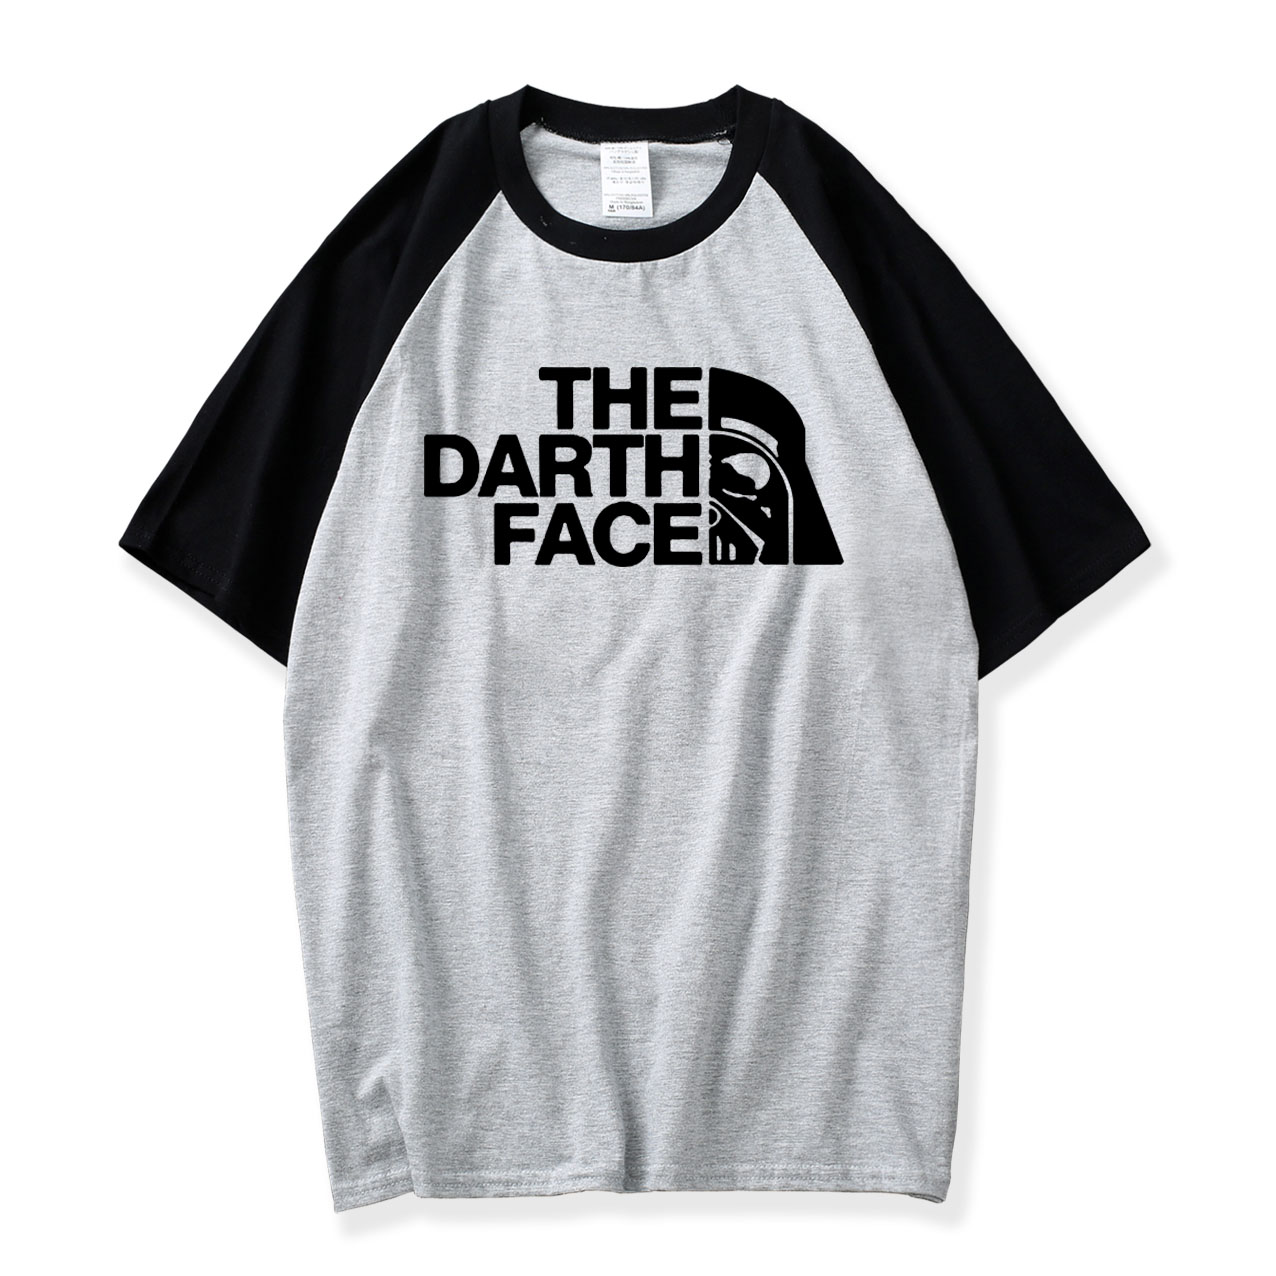 Star Wars The Darth Face Vader Men Raglan Tshit 2018 New Summer Raglan Black Gray White T Shirt 100% Cotton Hot Sale Mens Shirts